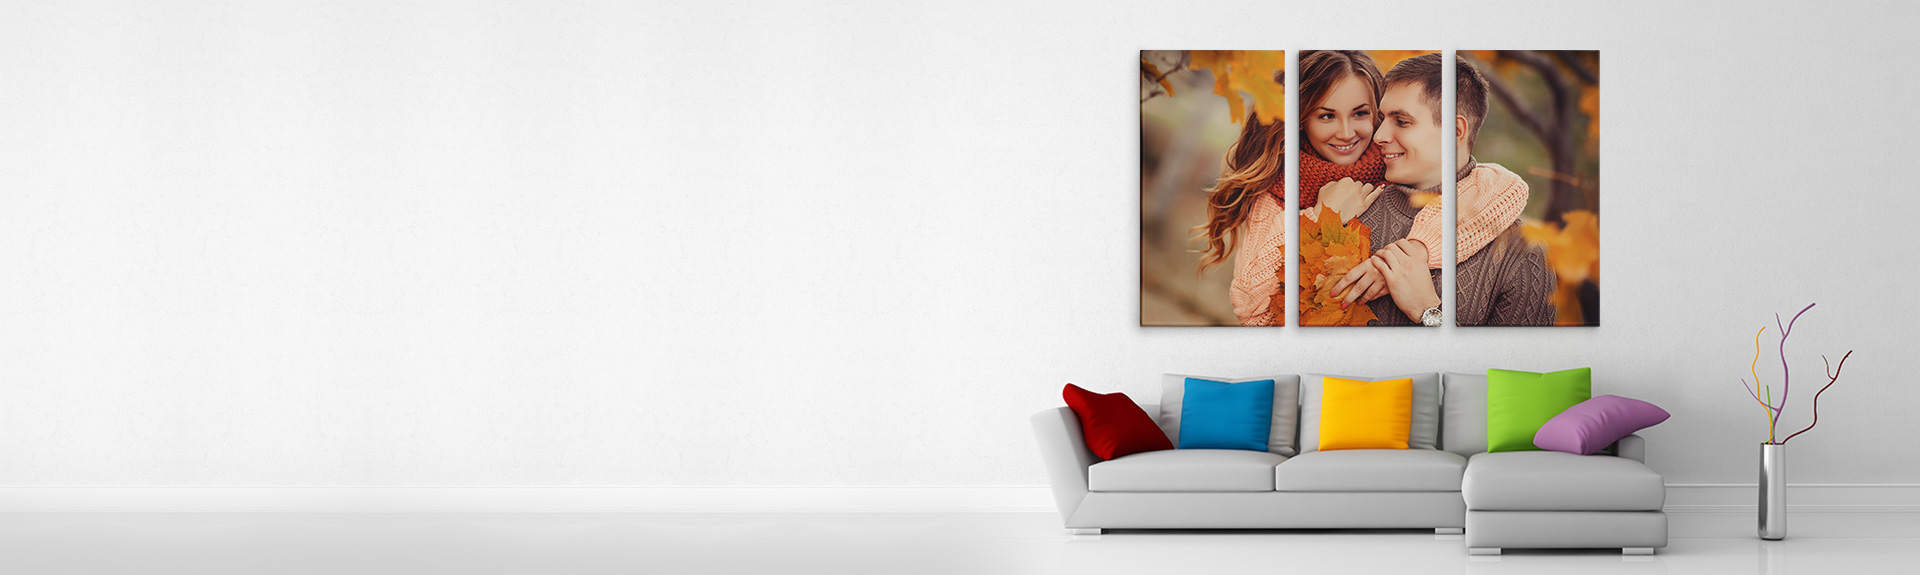 Customized Prints Painting Canvas Your Photos Turn Into On Canvas Gallery Decors